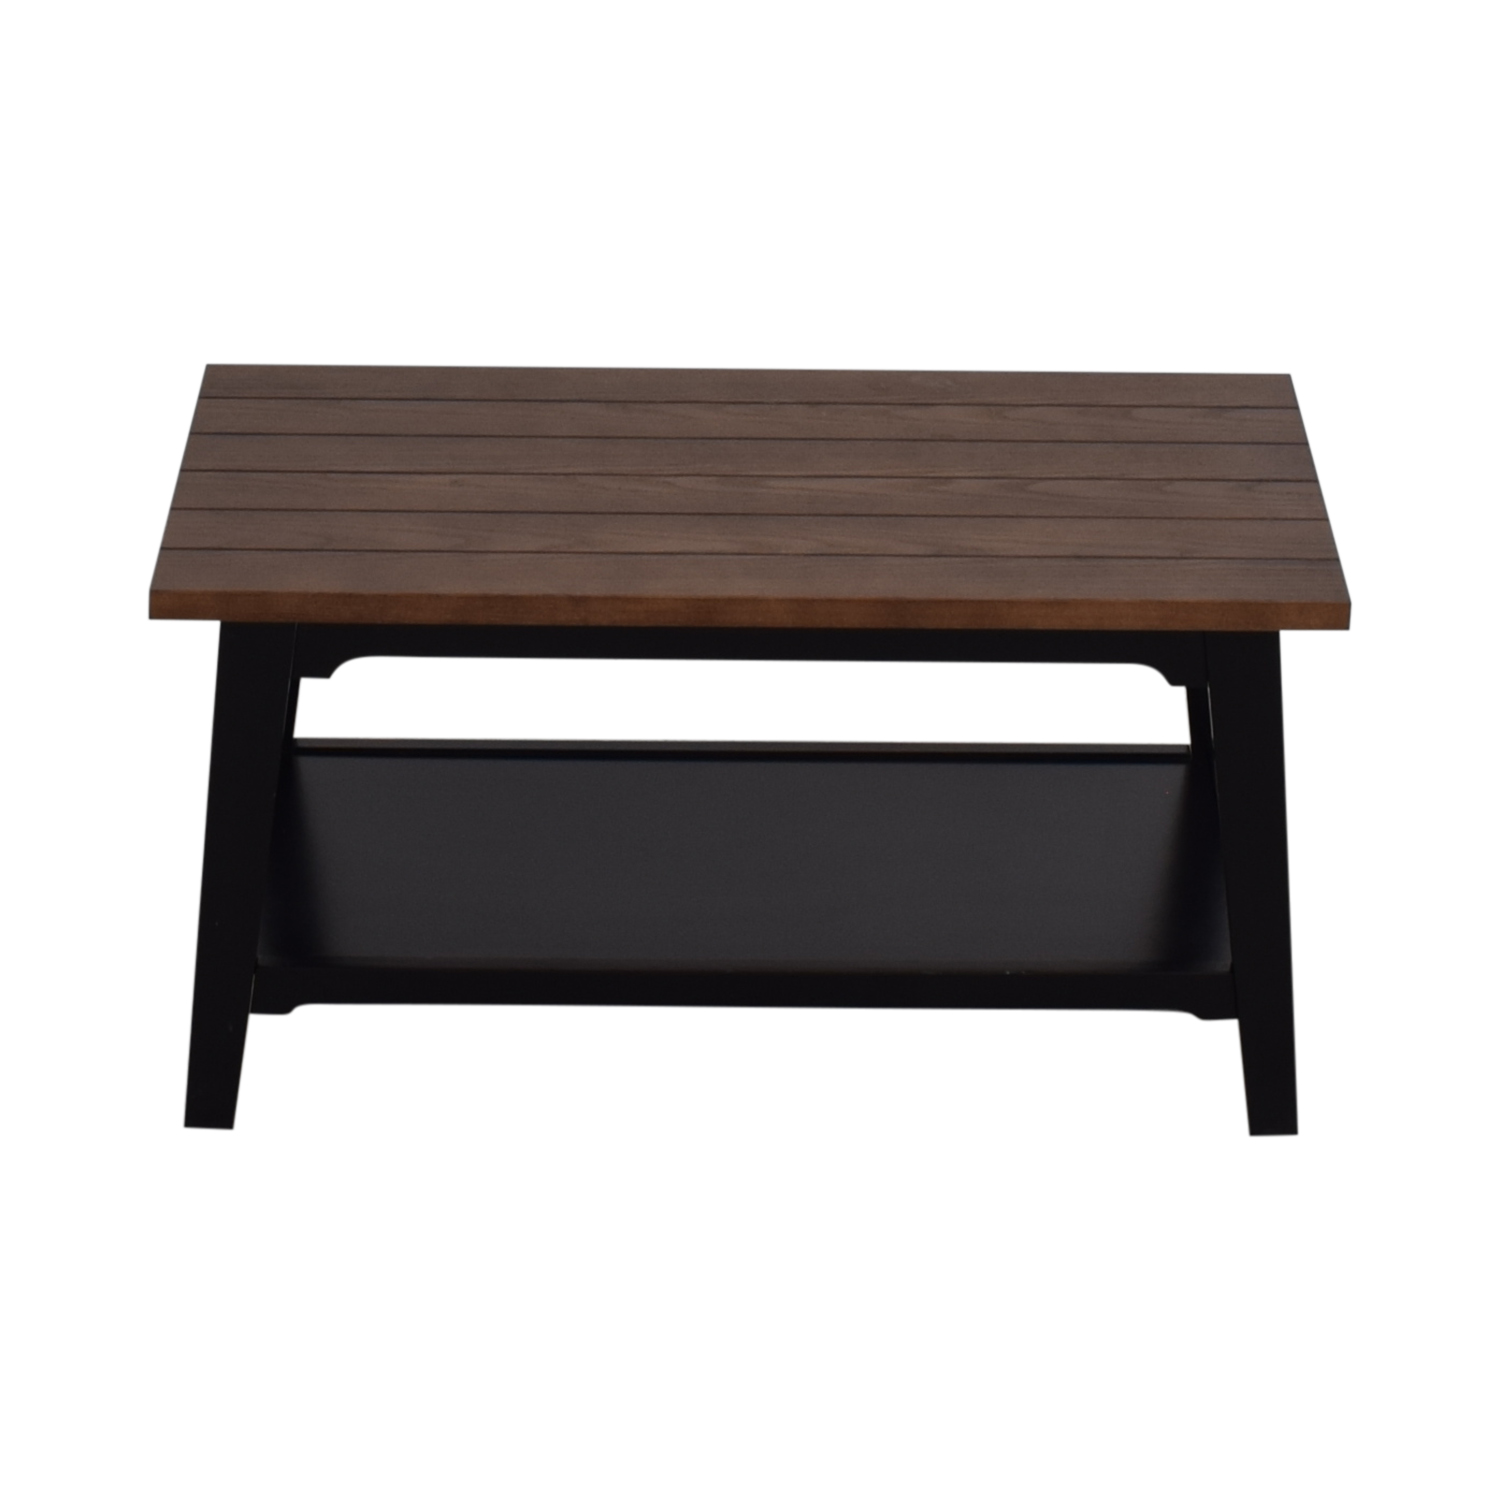 buy Bed Bath & Beyond Brown Wood Coffee Table Bed, Bath, & Beyond